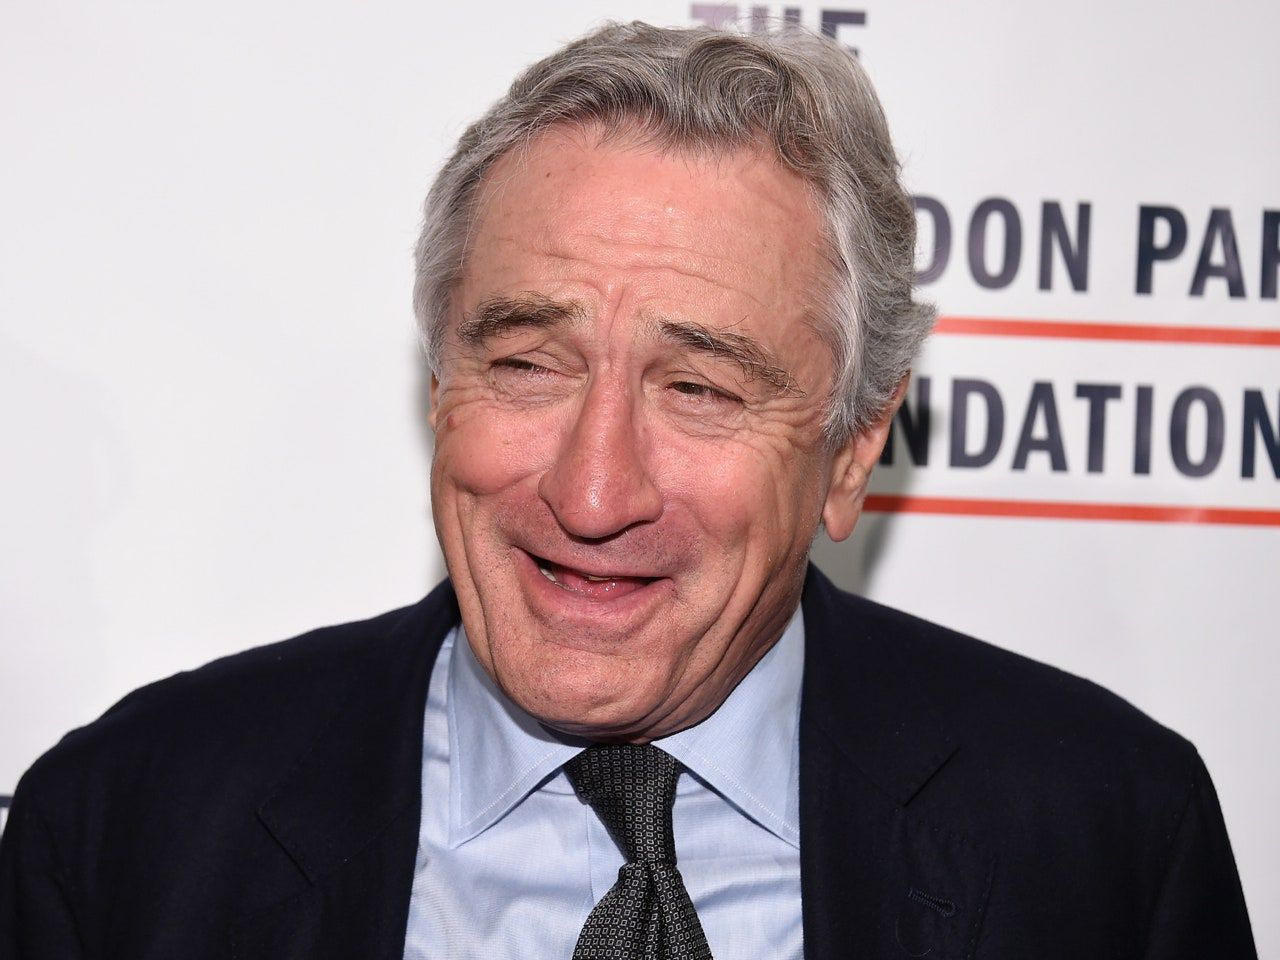 Robert De Niro says he would like to play Cuomo in pandemic movie'